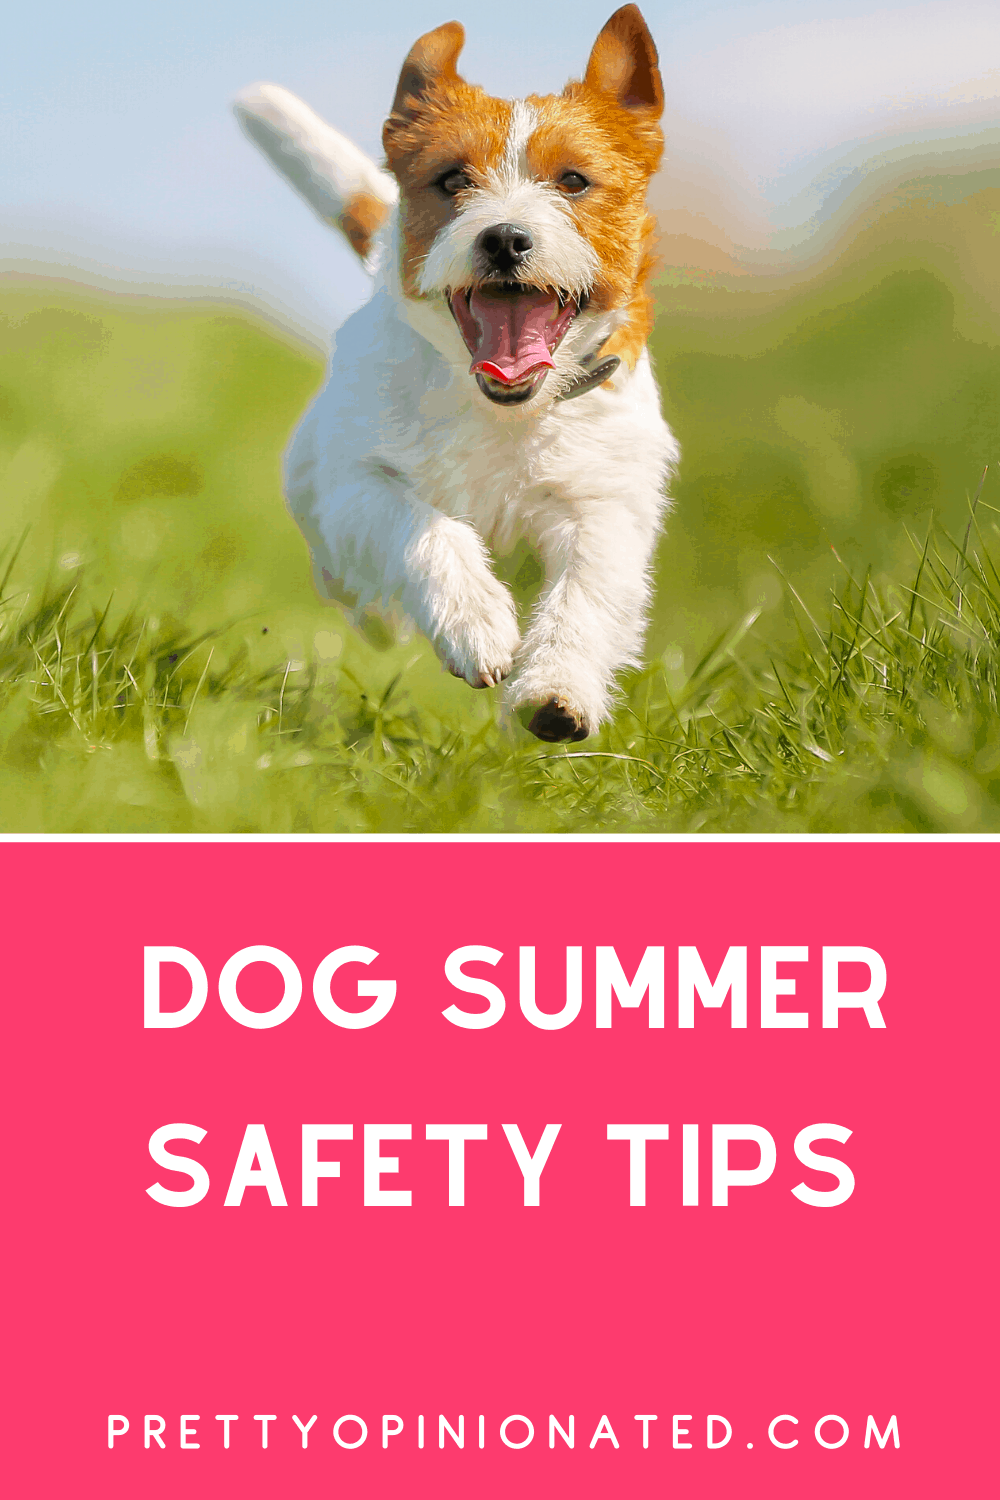 Tips for Keeping Your Dog Safe This Summer